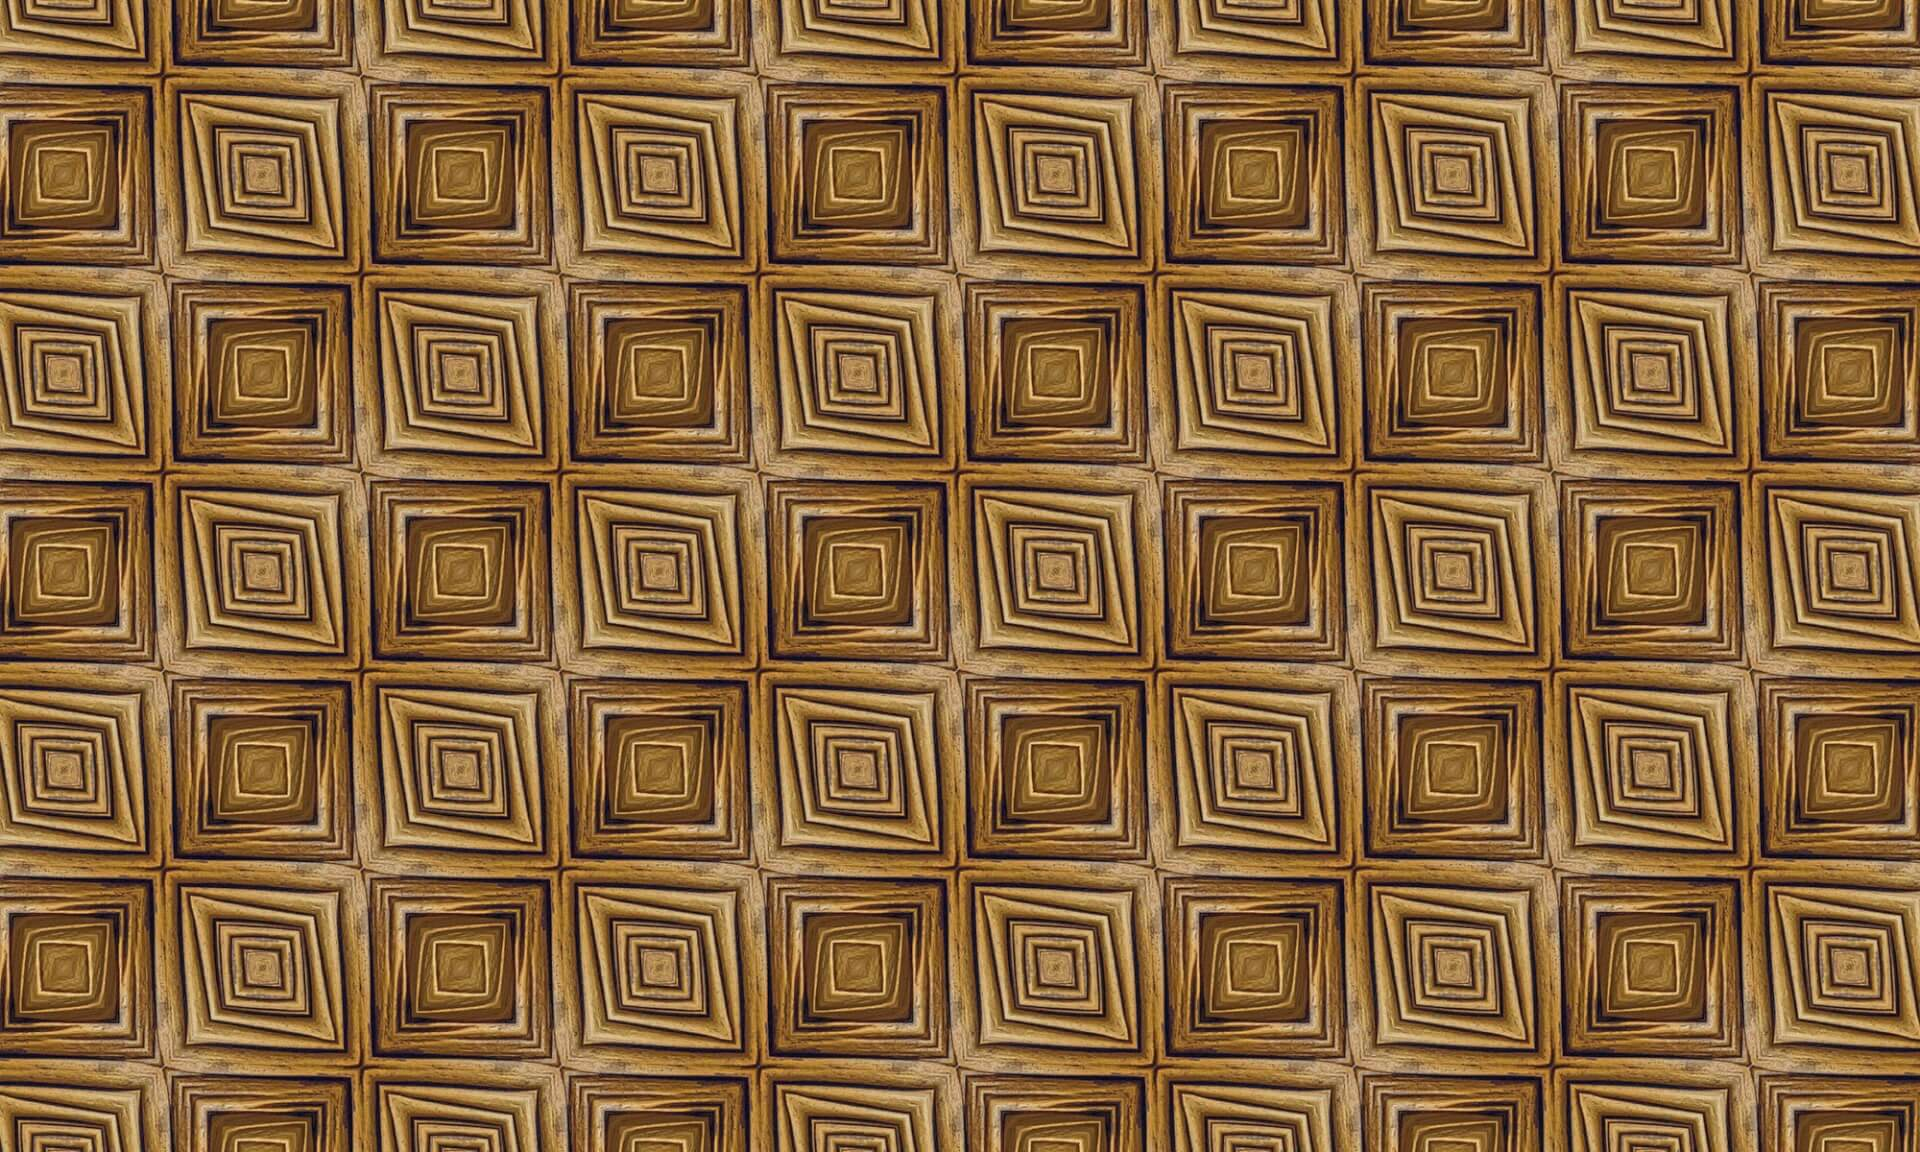 Wacky Wood Paneling (DE0594)-Square Doug Garrabrants